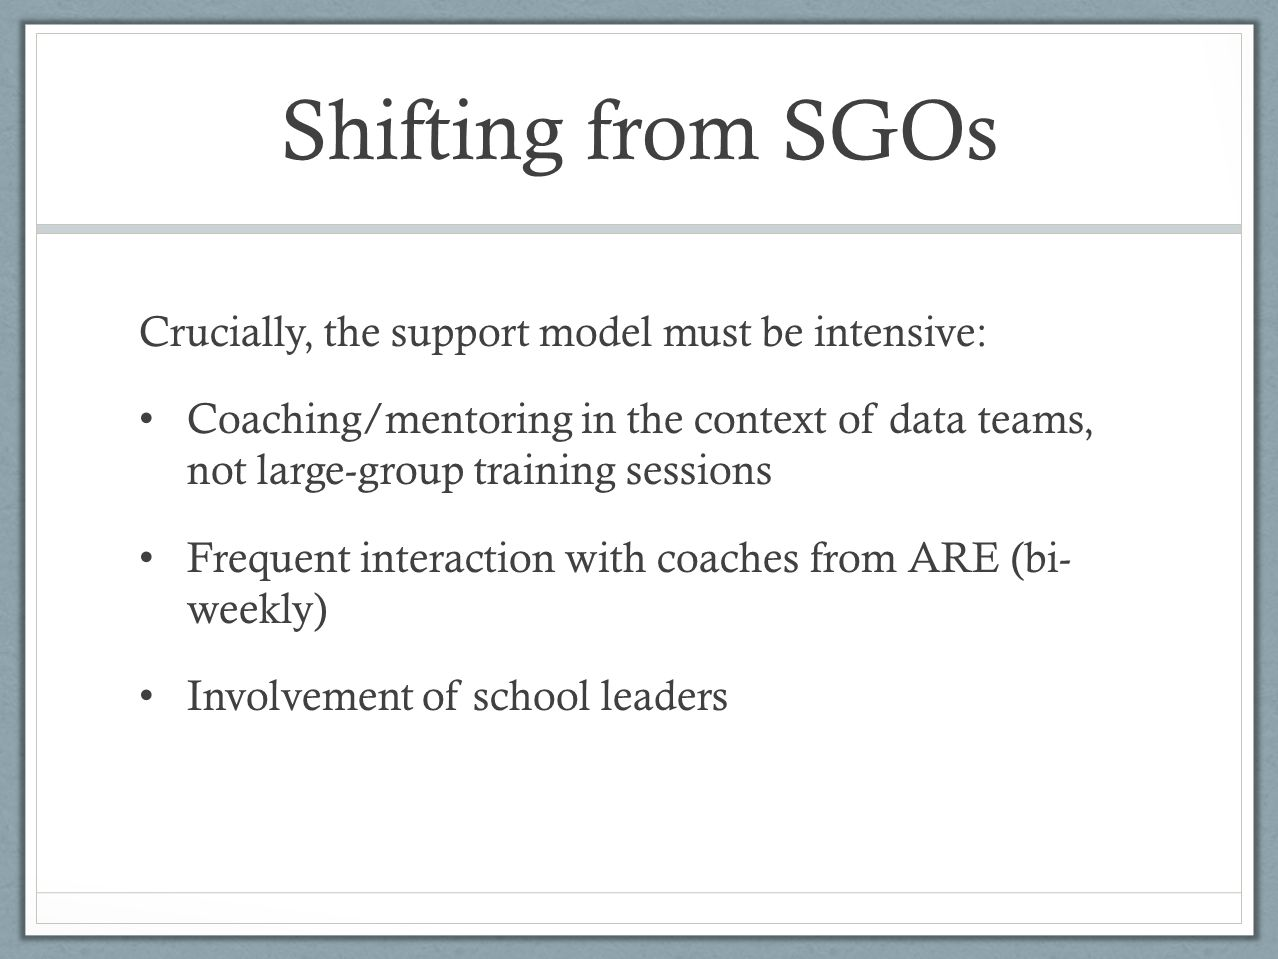 Shifting from SGOs Crucially, the support model must be intensive: Coaching/mentoring in the context of data teams, not large-group training sessions Frequent interaction with coaches from ARE (bi- weekly) Involvement of school leaders